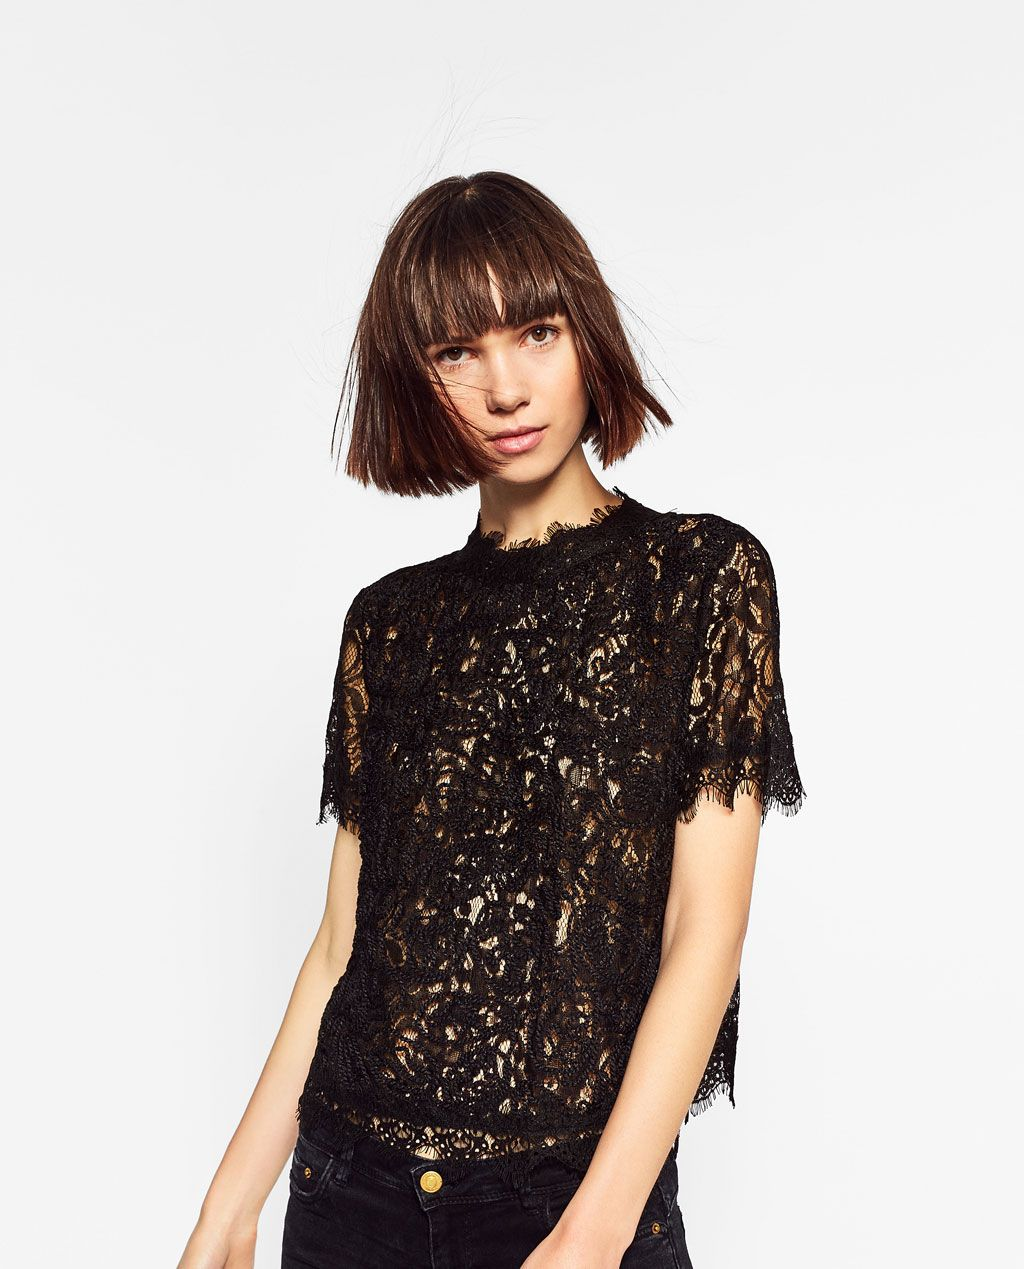 d8140e10992b62 CAMISETA ENCAJE BORDADO | WoW Clothes | Zara lace top, Lace tops ...